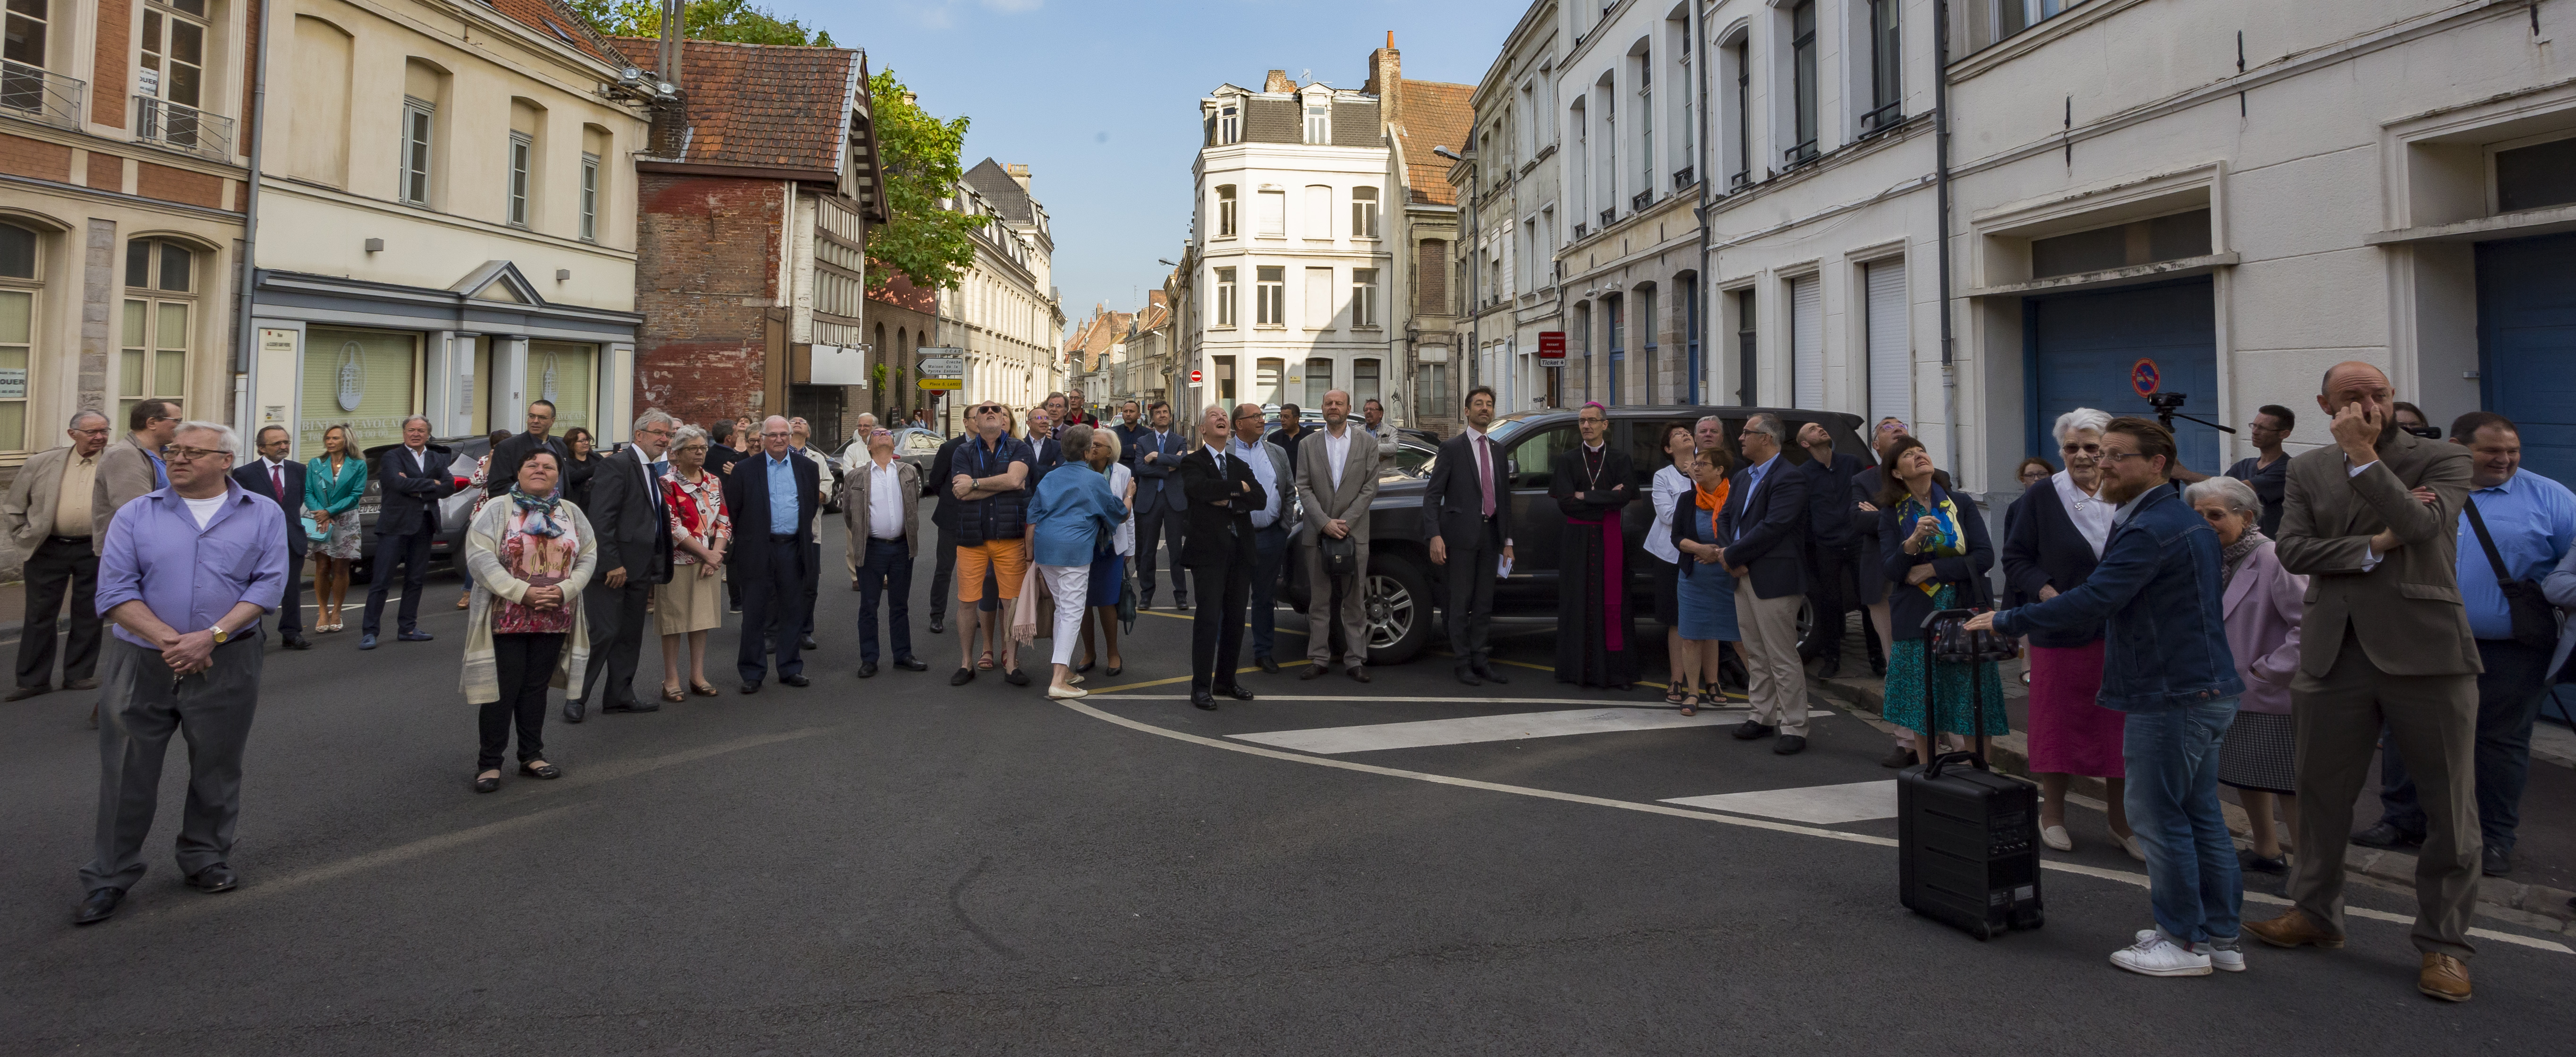 ADL 19-06-22 inauguration St Pierre 11